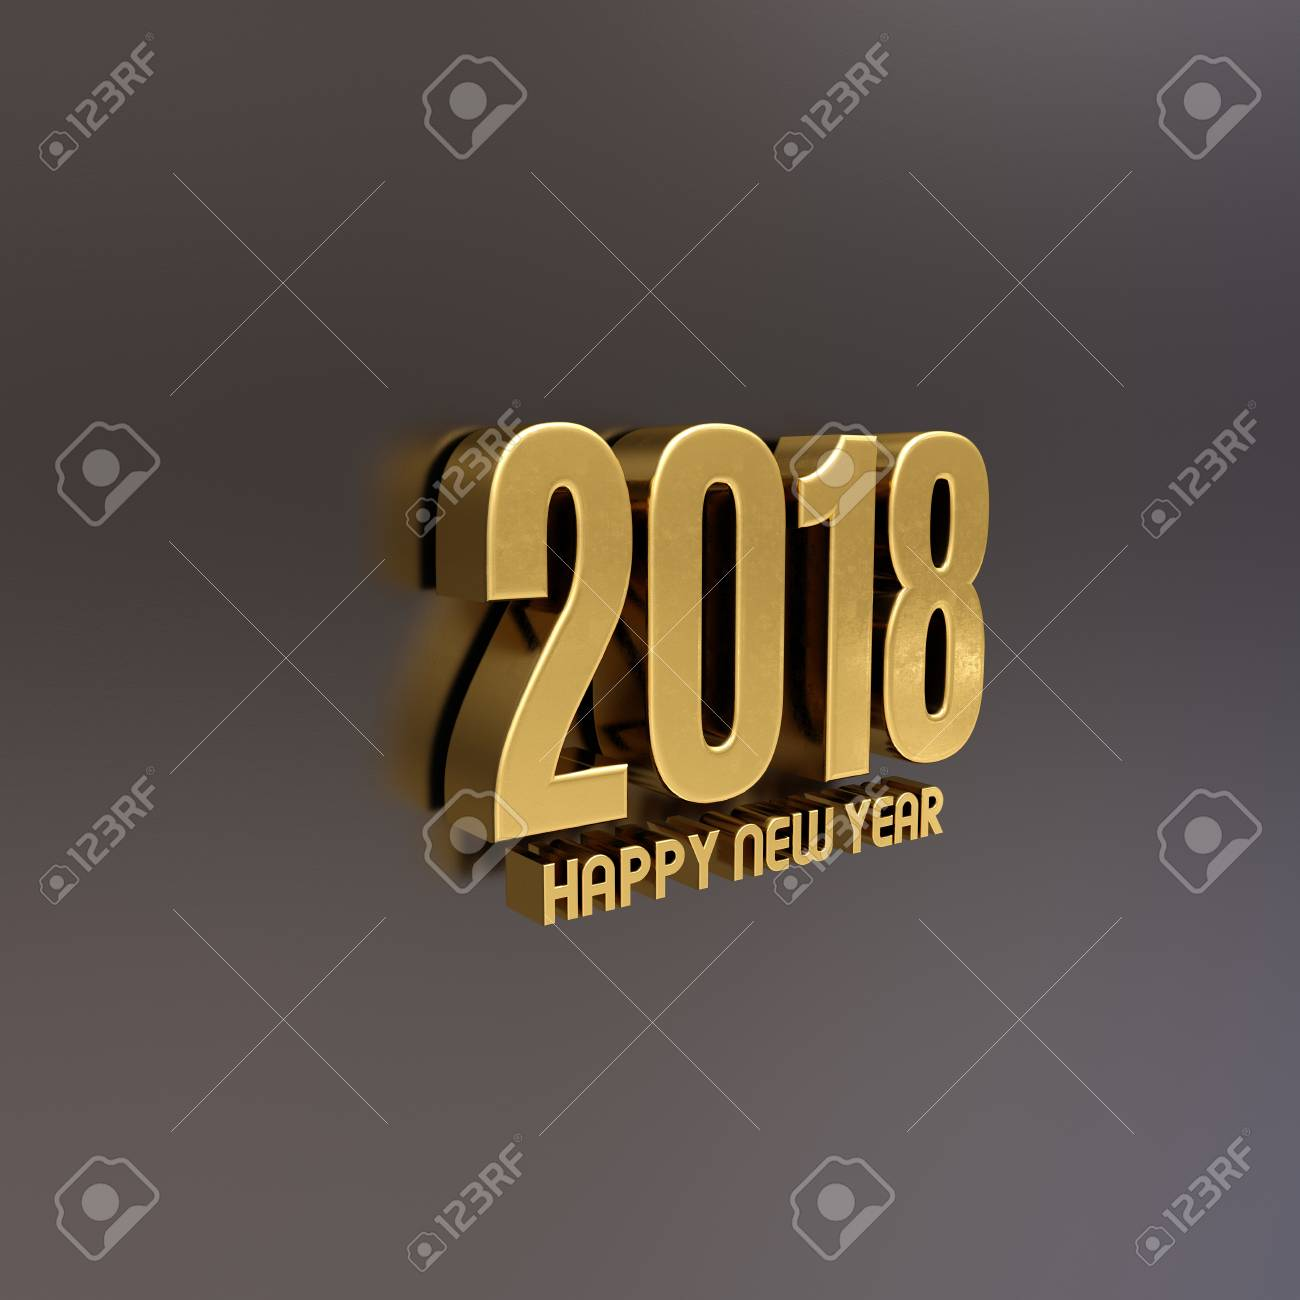 Gold happy new year 2018 text design 3d illustration golden stock gold happy new year 2018 text design 3d illustration golden 2018 happy new year festive m4hsunfo